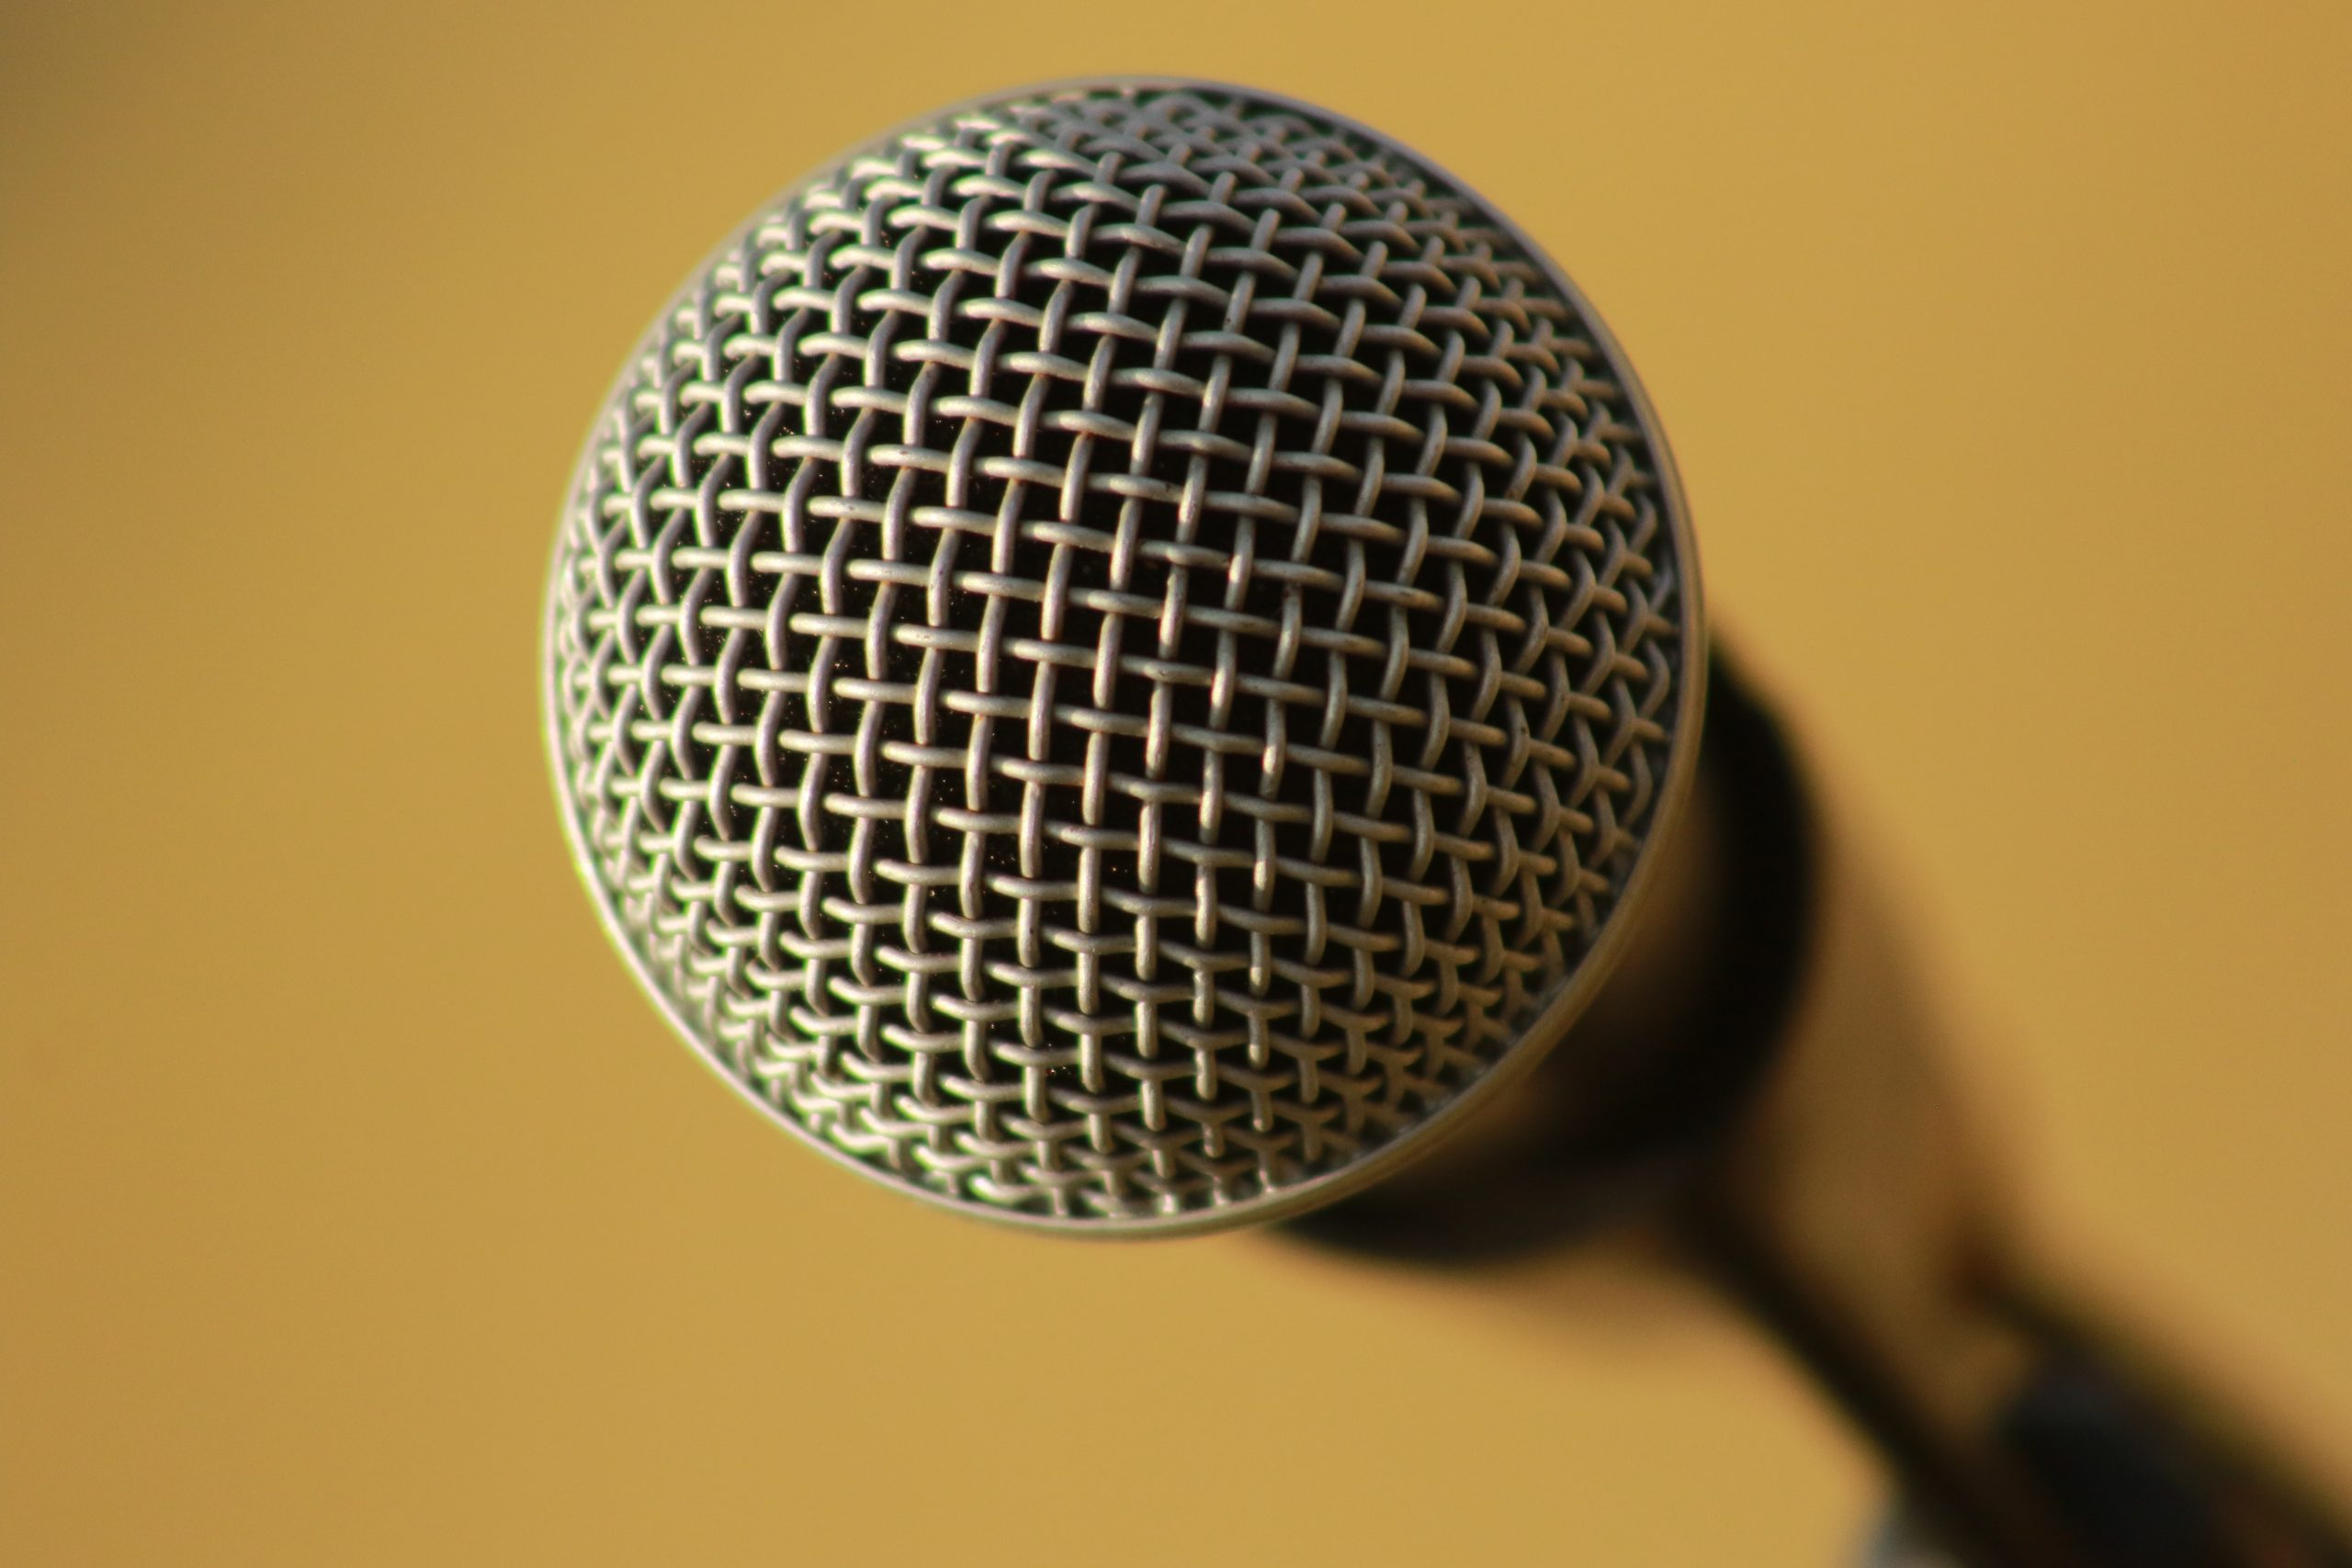 Image shows close up shot of the top of a microphone, against a mustard yellow background.